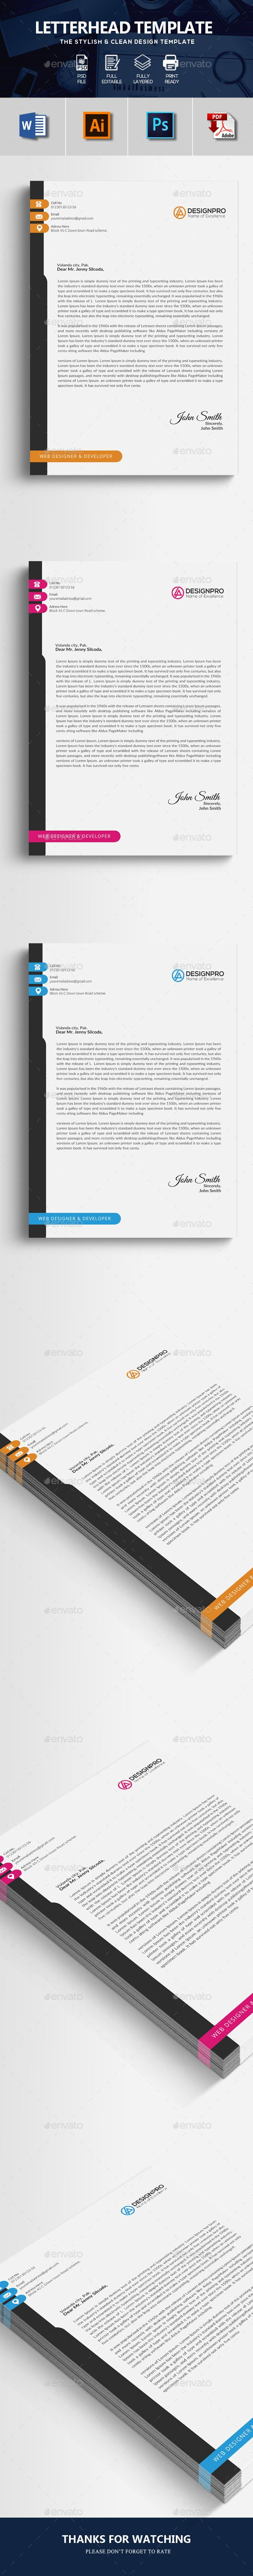 Letterhead  Letterhead Specification      CMYK Color Mode     300 DPI Resolution     Size 210×297 3 mm bleed  Features      Easily customization     Editable Text Layers     Smart Object Layer to Put Images     Well Organized Layer     Free Fonts are Used     Professional and clean files